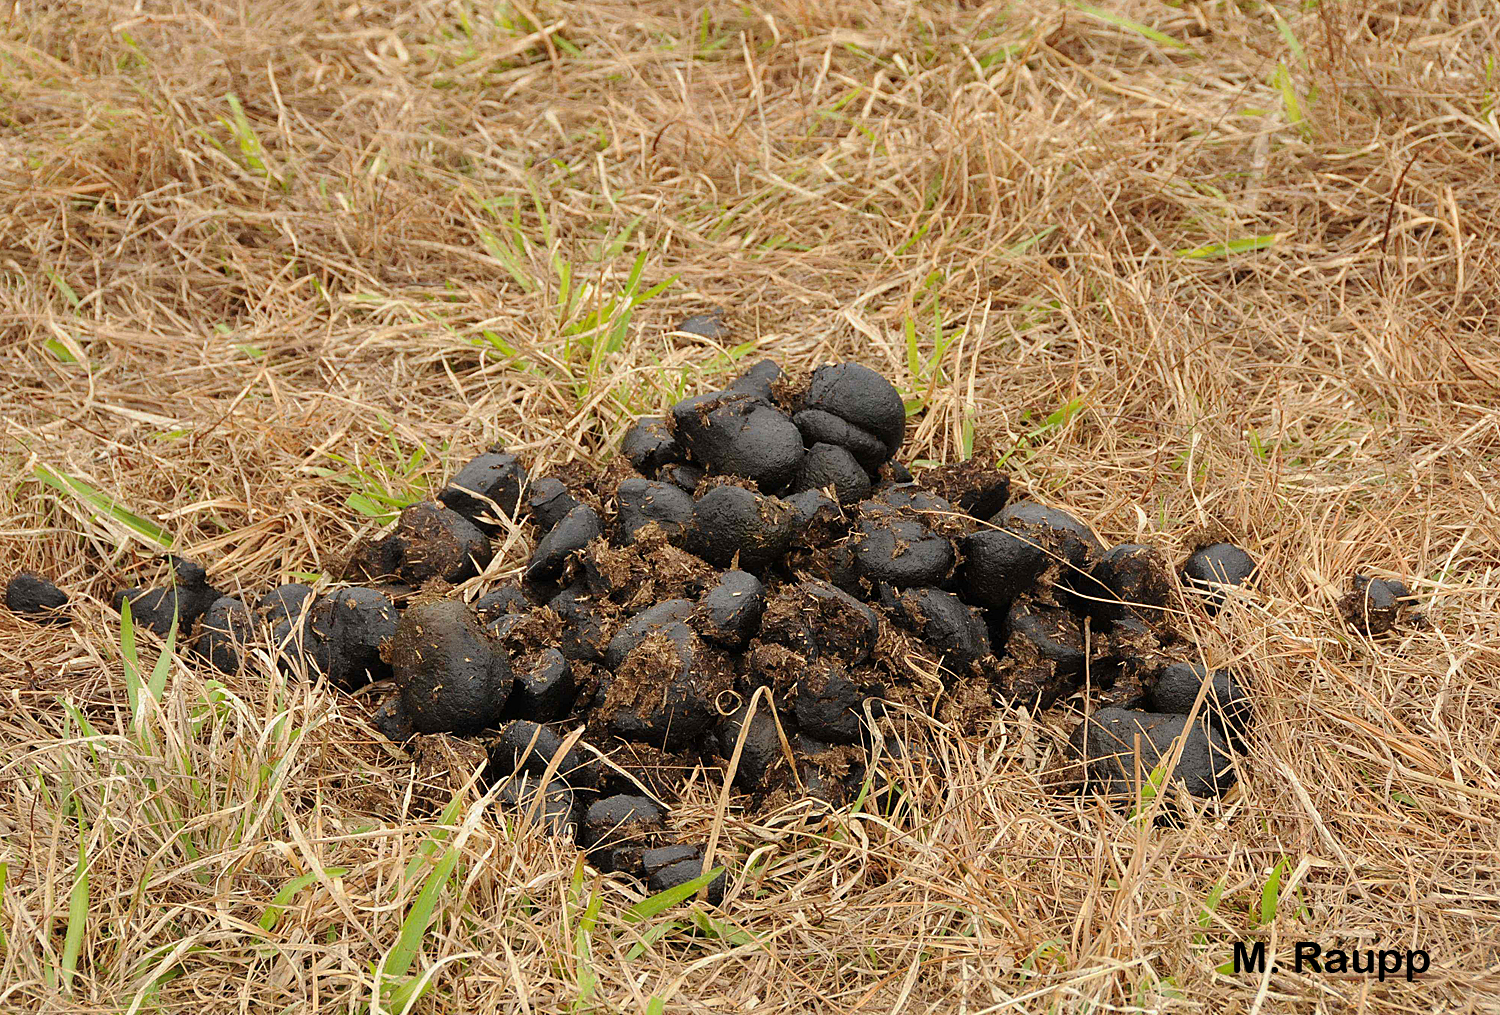 Dung beetle larvae will turn a pile of horse manure into remarkable beetles.